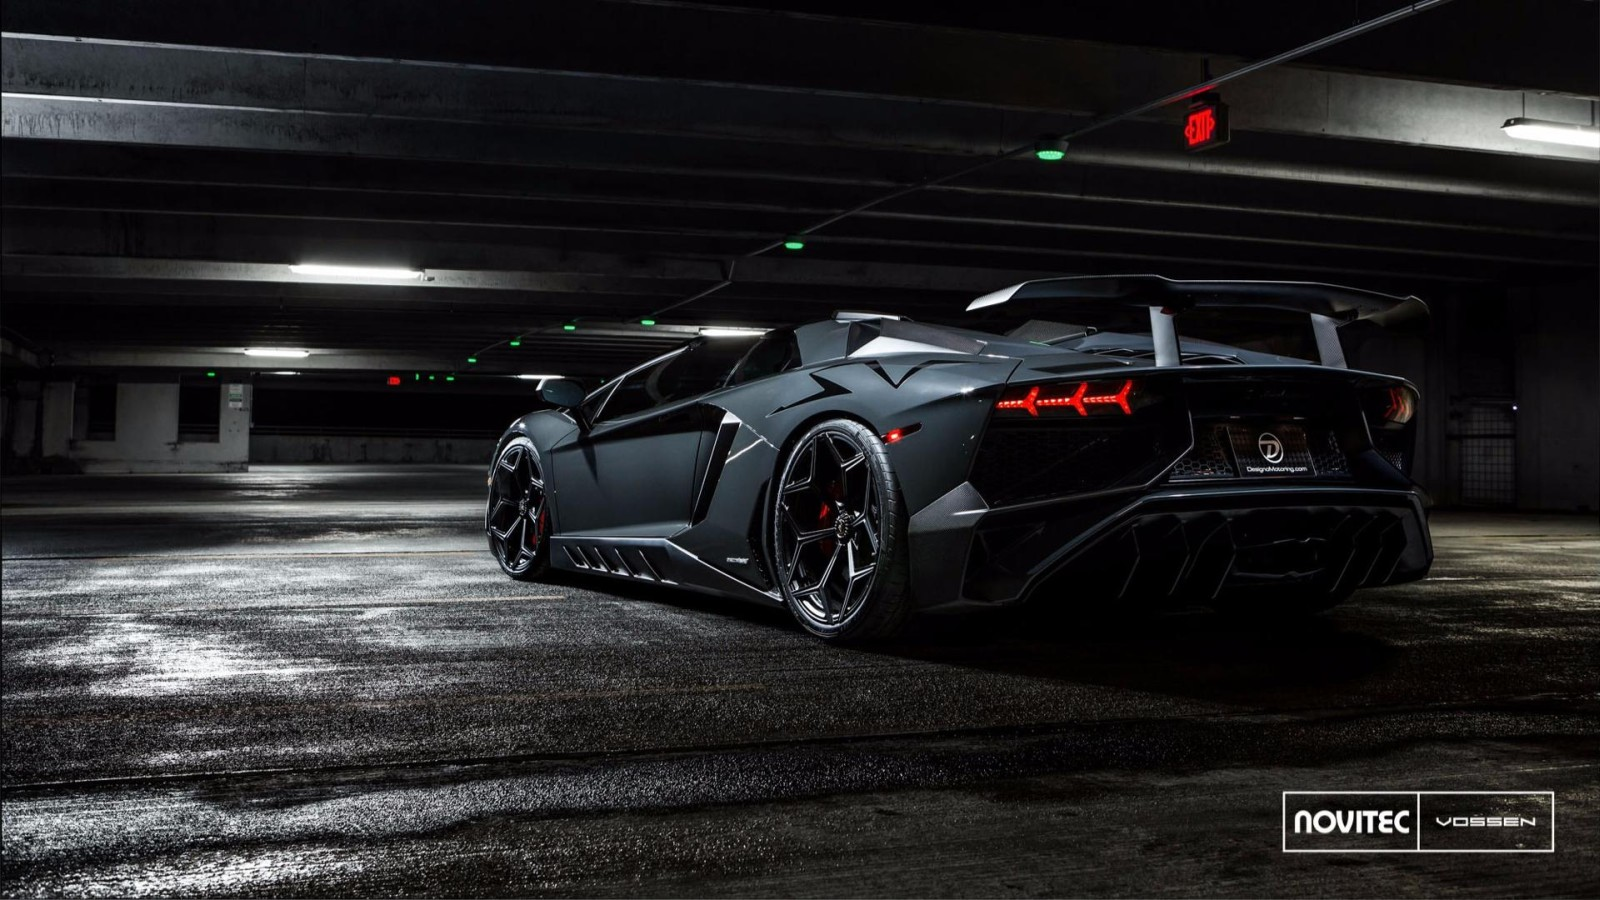 novitec torado lamborghini aventador sv roadster looks absolutely heavenly motoroids. Black Bedroom Furniture Sets. Home Design Ideas